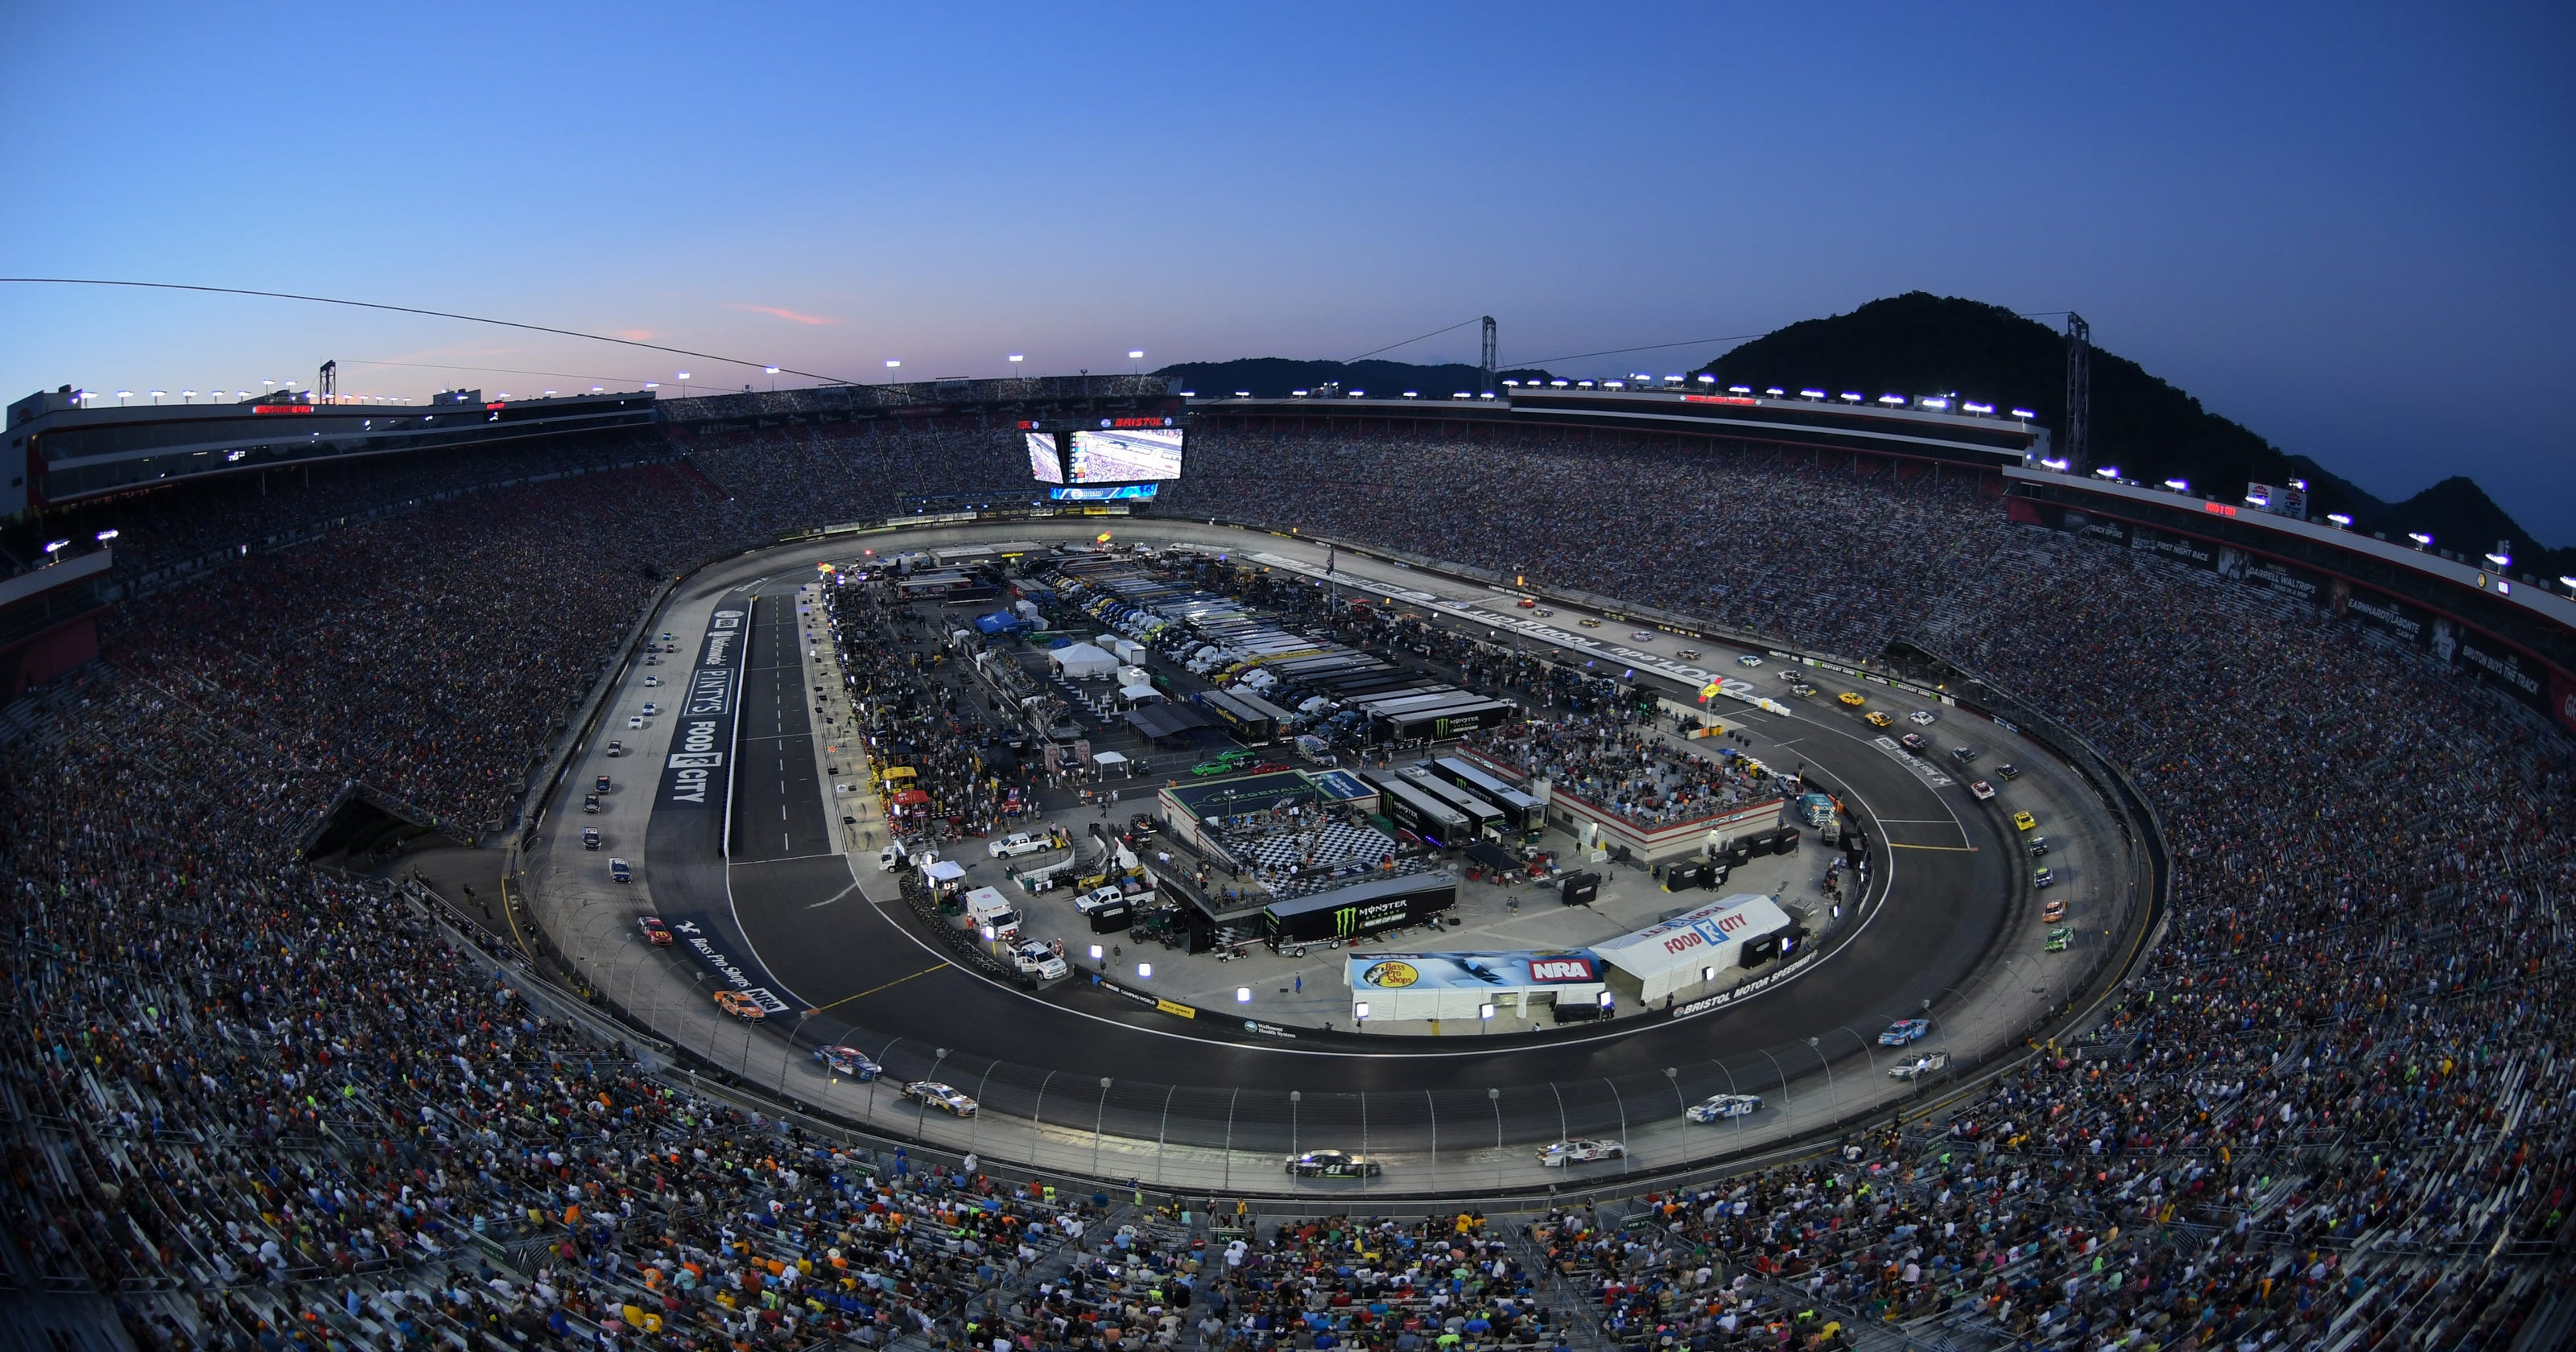 Bristol Motor Speedway retains NRA as co-sponsor for night race